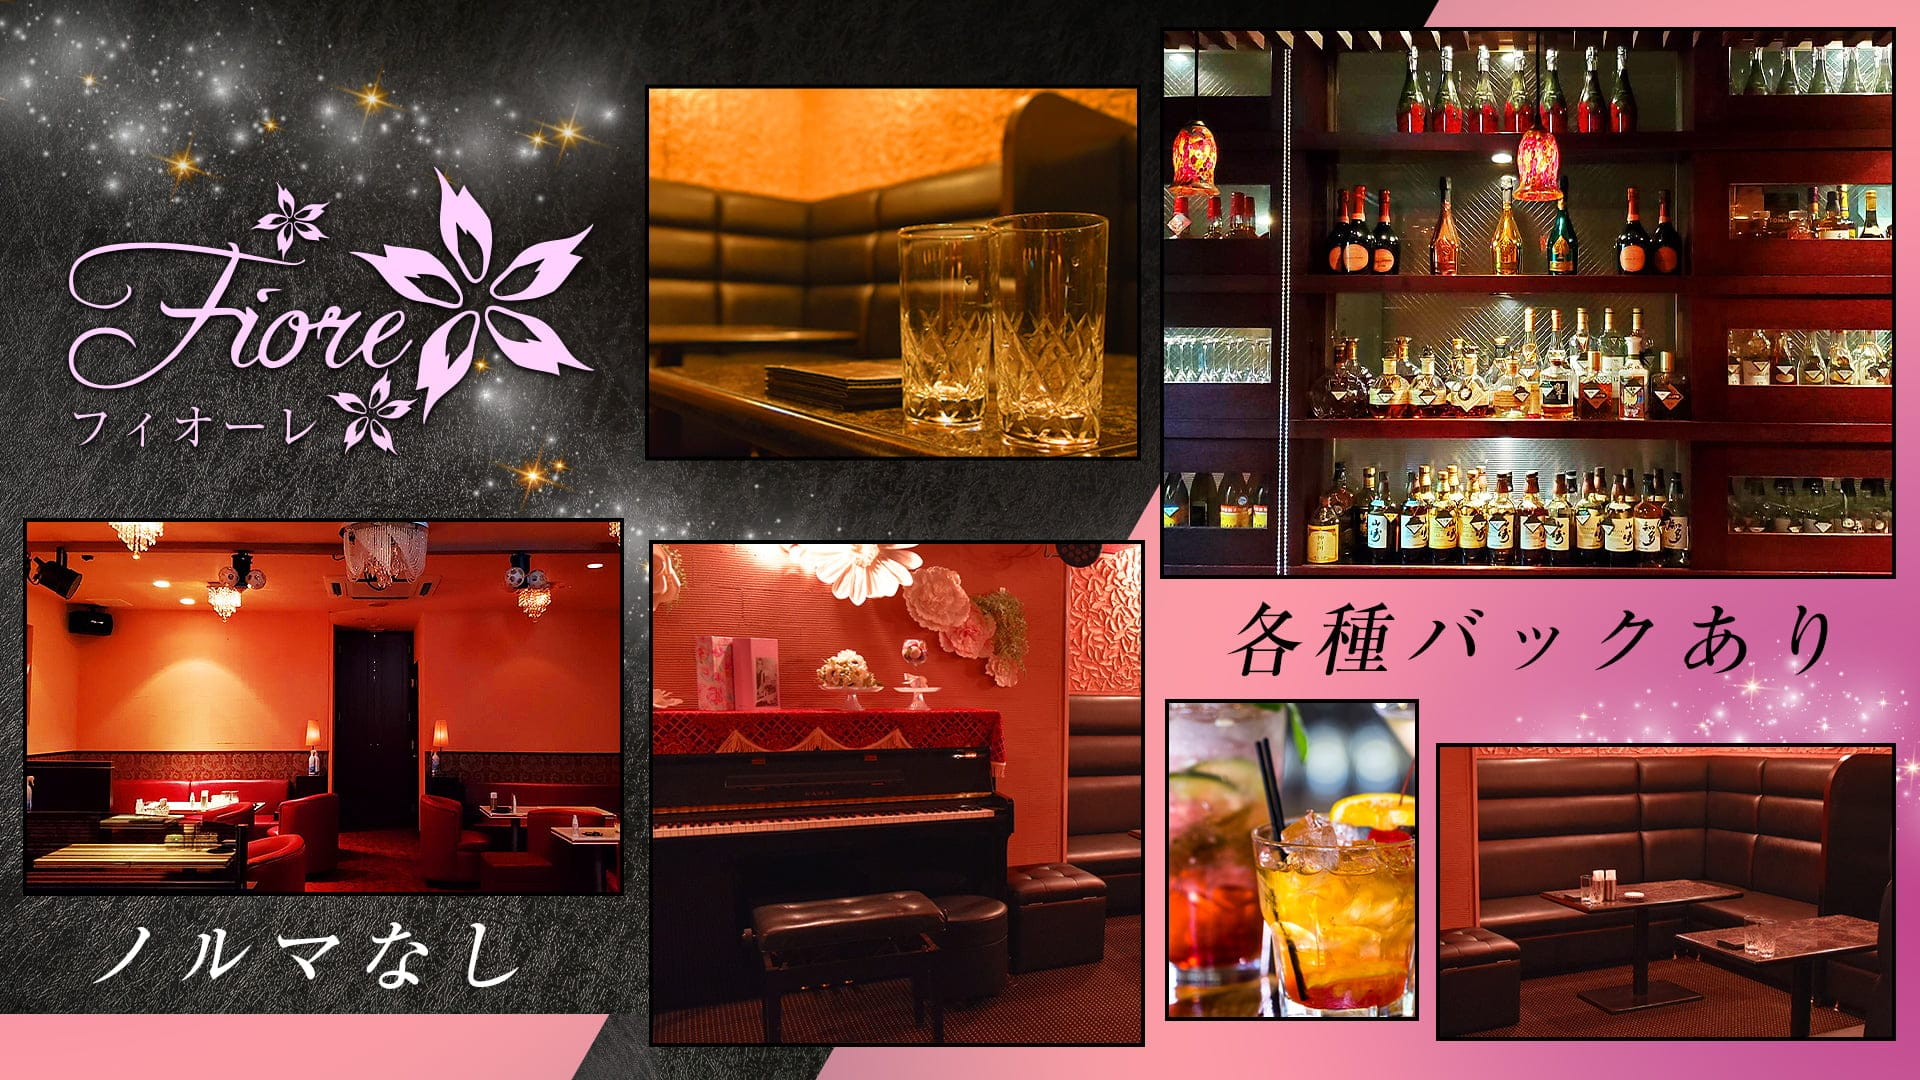 SHOW BAR Fiore(フィオーレ)【公式求人・体入情報】 都町ショークラブ TOP画像